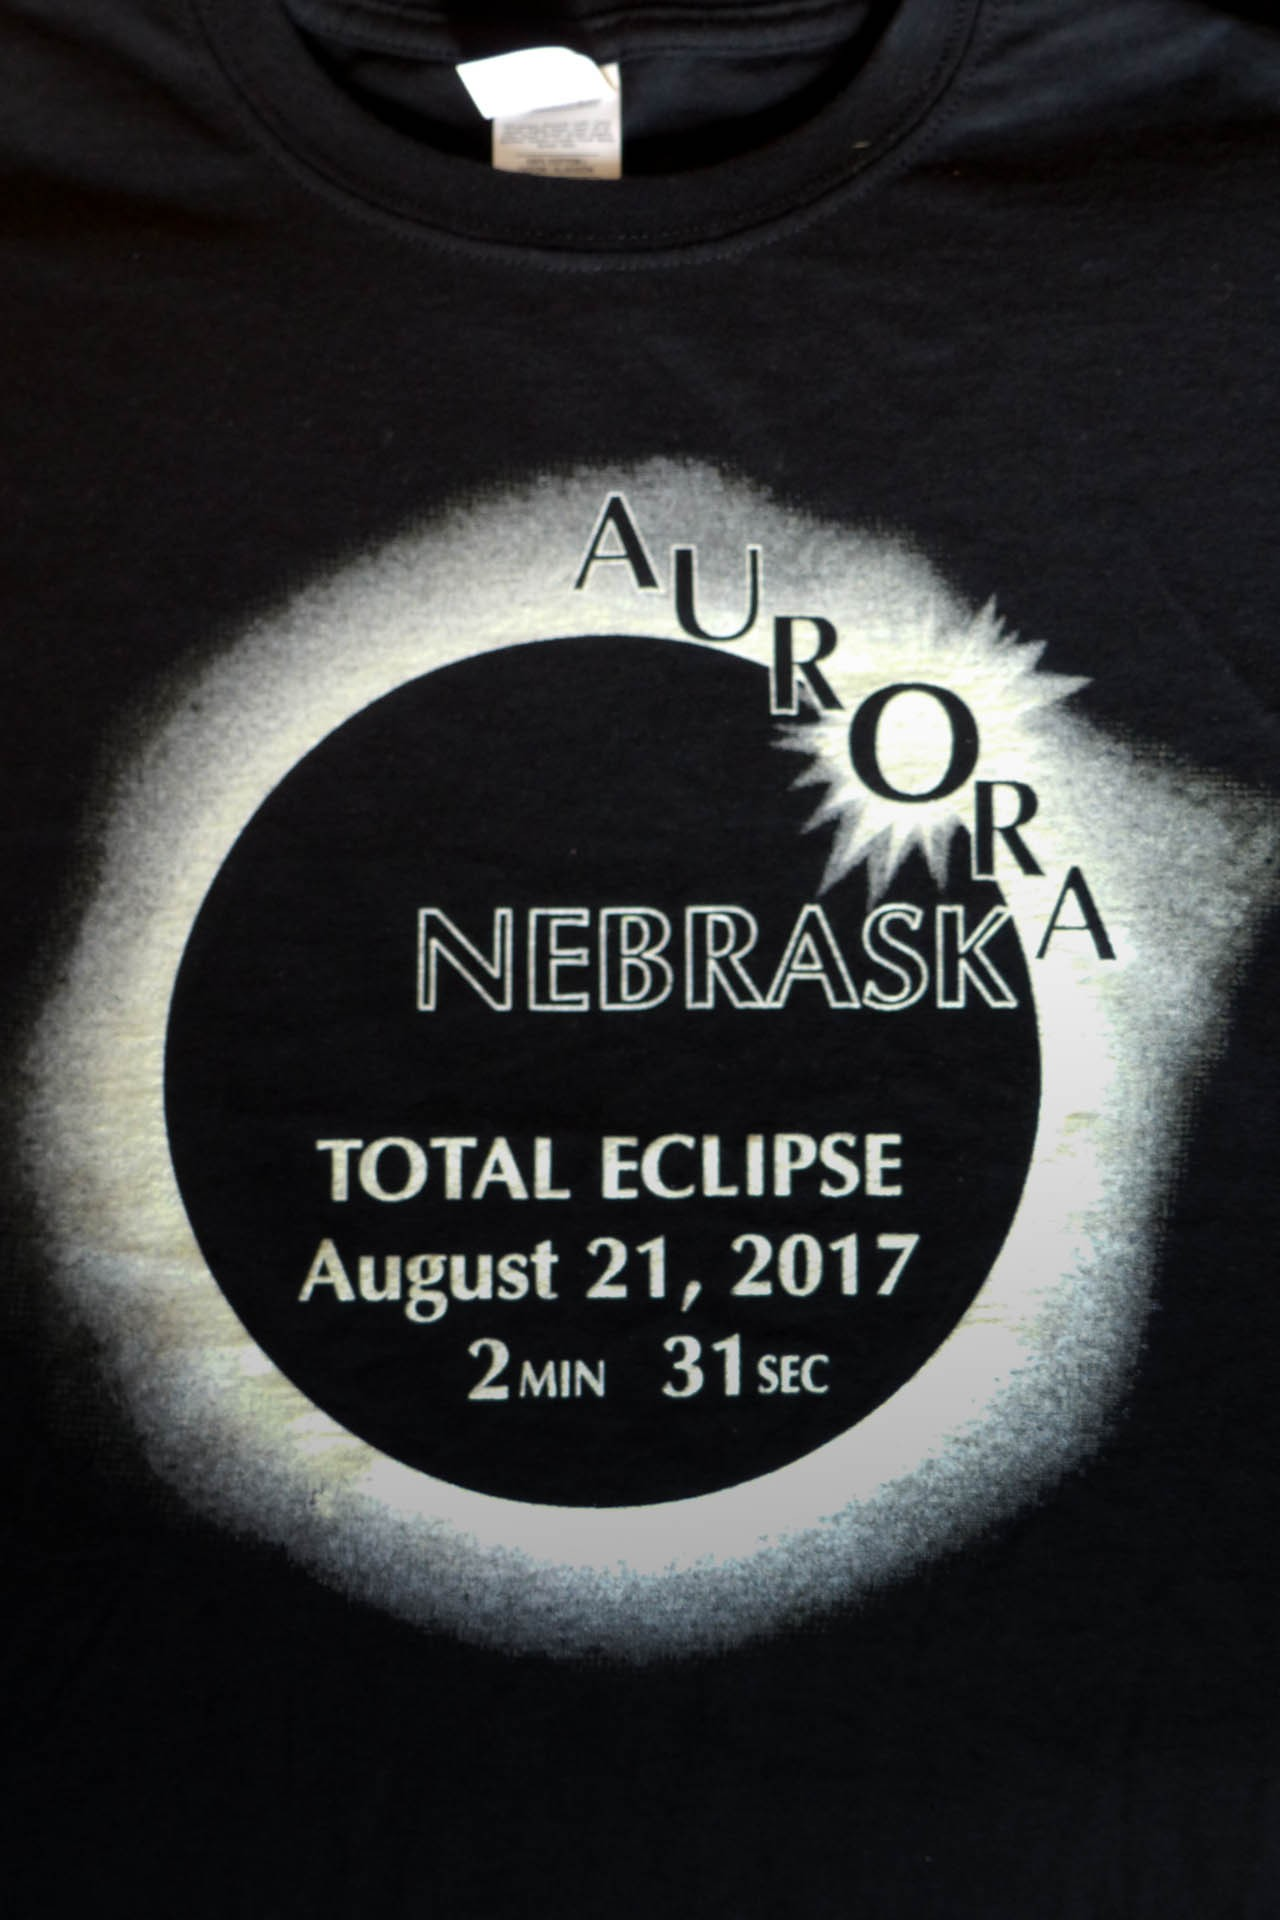 Story and photos of our family trip to see totality of the 2017 solar eclipse, Nebraska USA. How we did vacation planning, eclipse chasing and camera setup. Eclipse souvenir t-shirt.